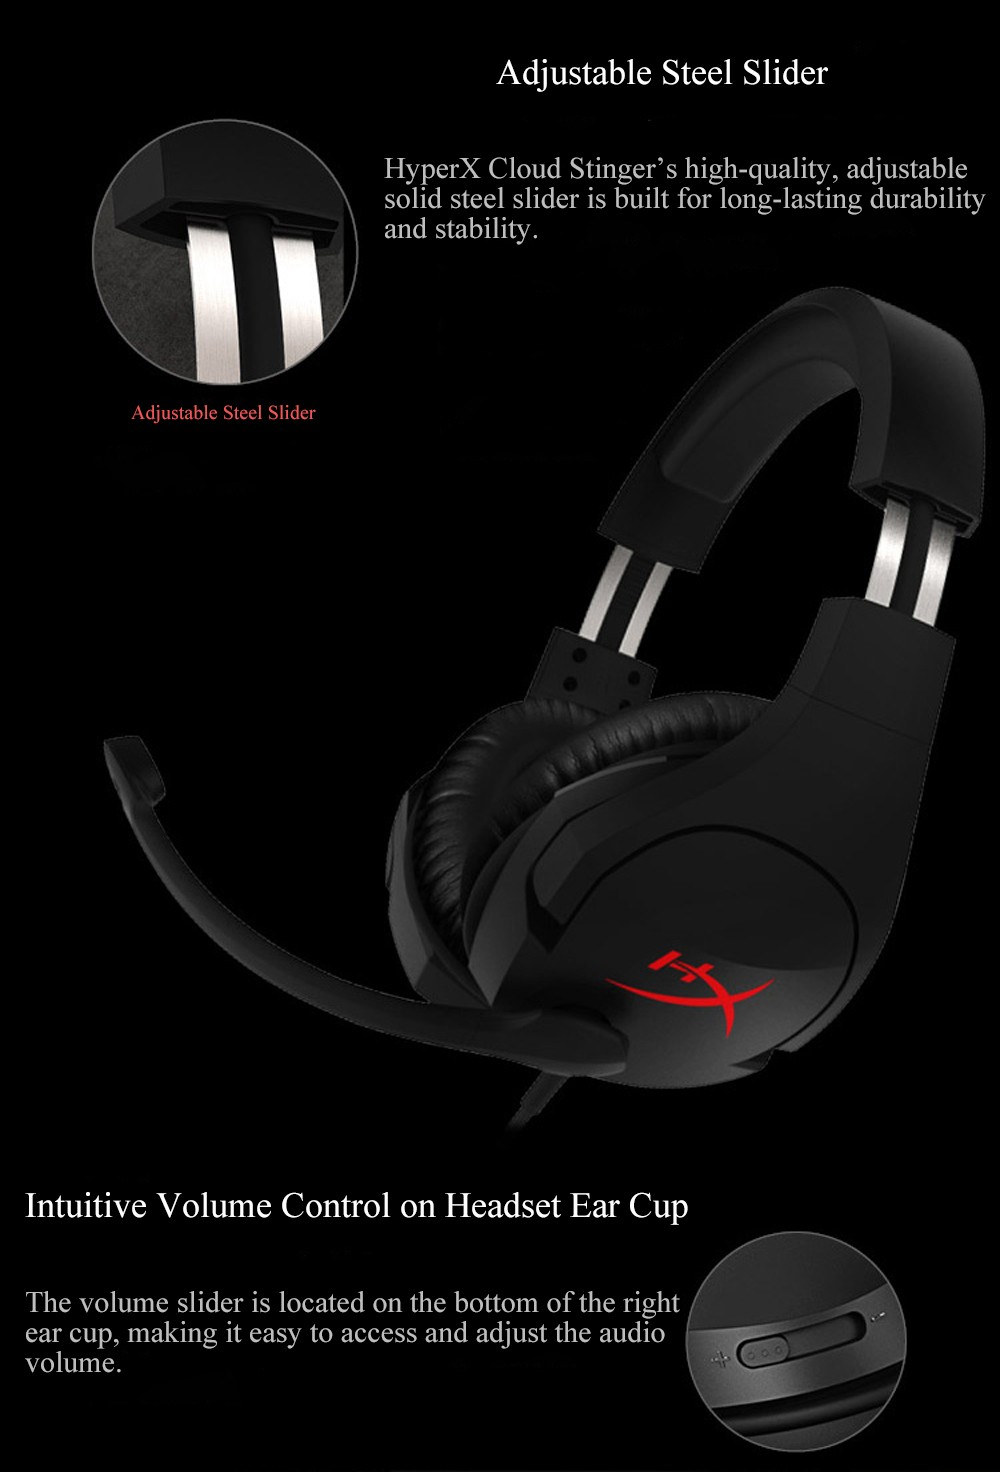 Kingston HyperX Cloud Stinger Auriculares Mic Headphone Steelseries Gaming Headset with Microphone For PC PS4 Xbox Mobile 32